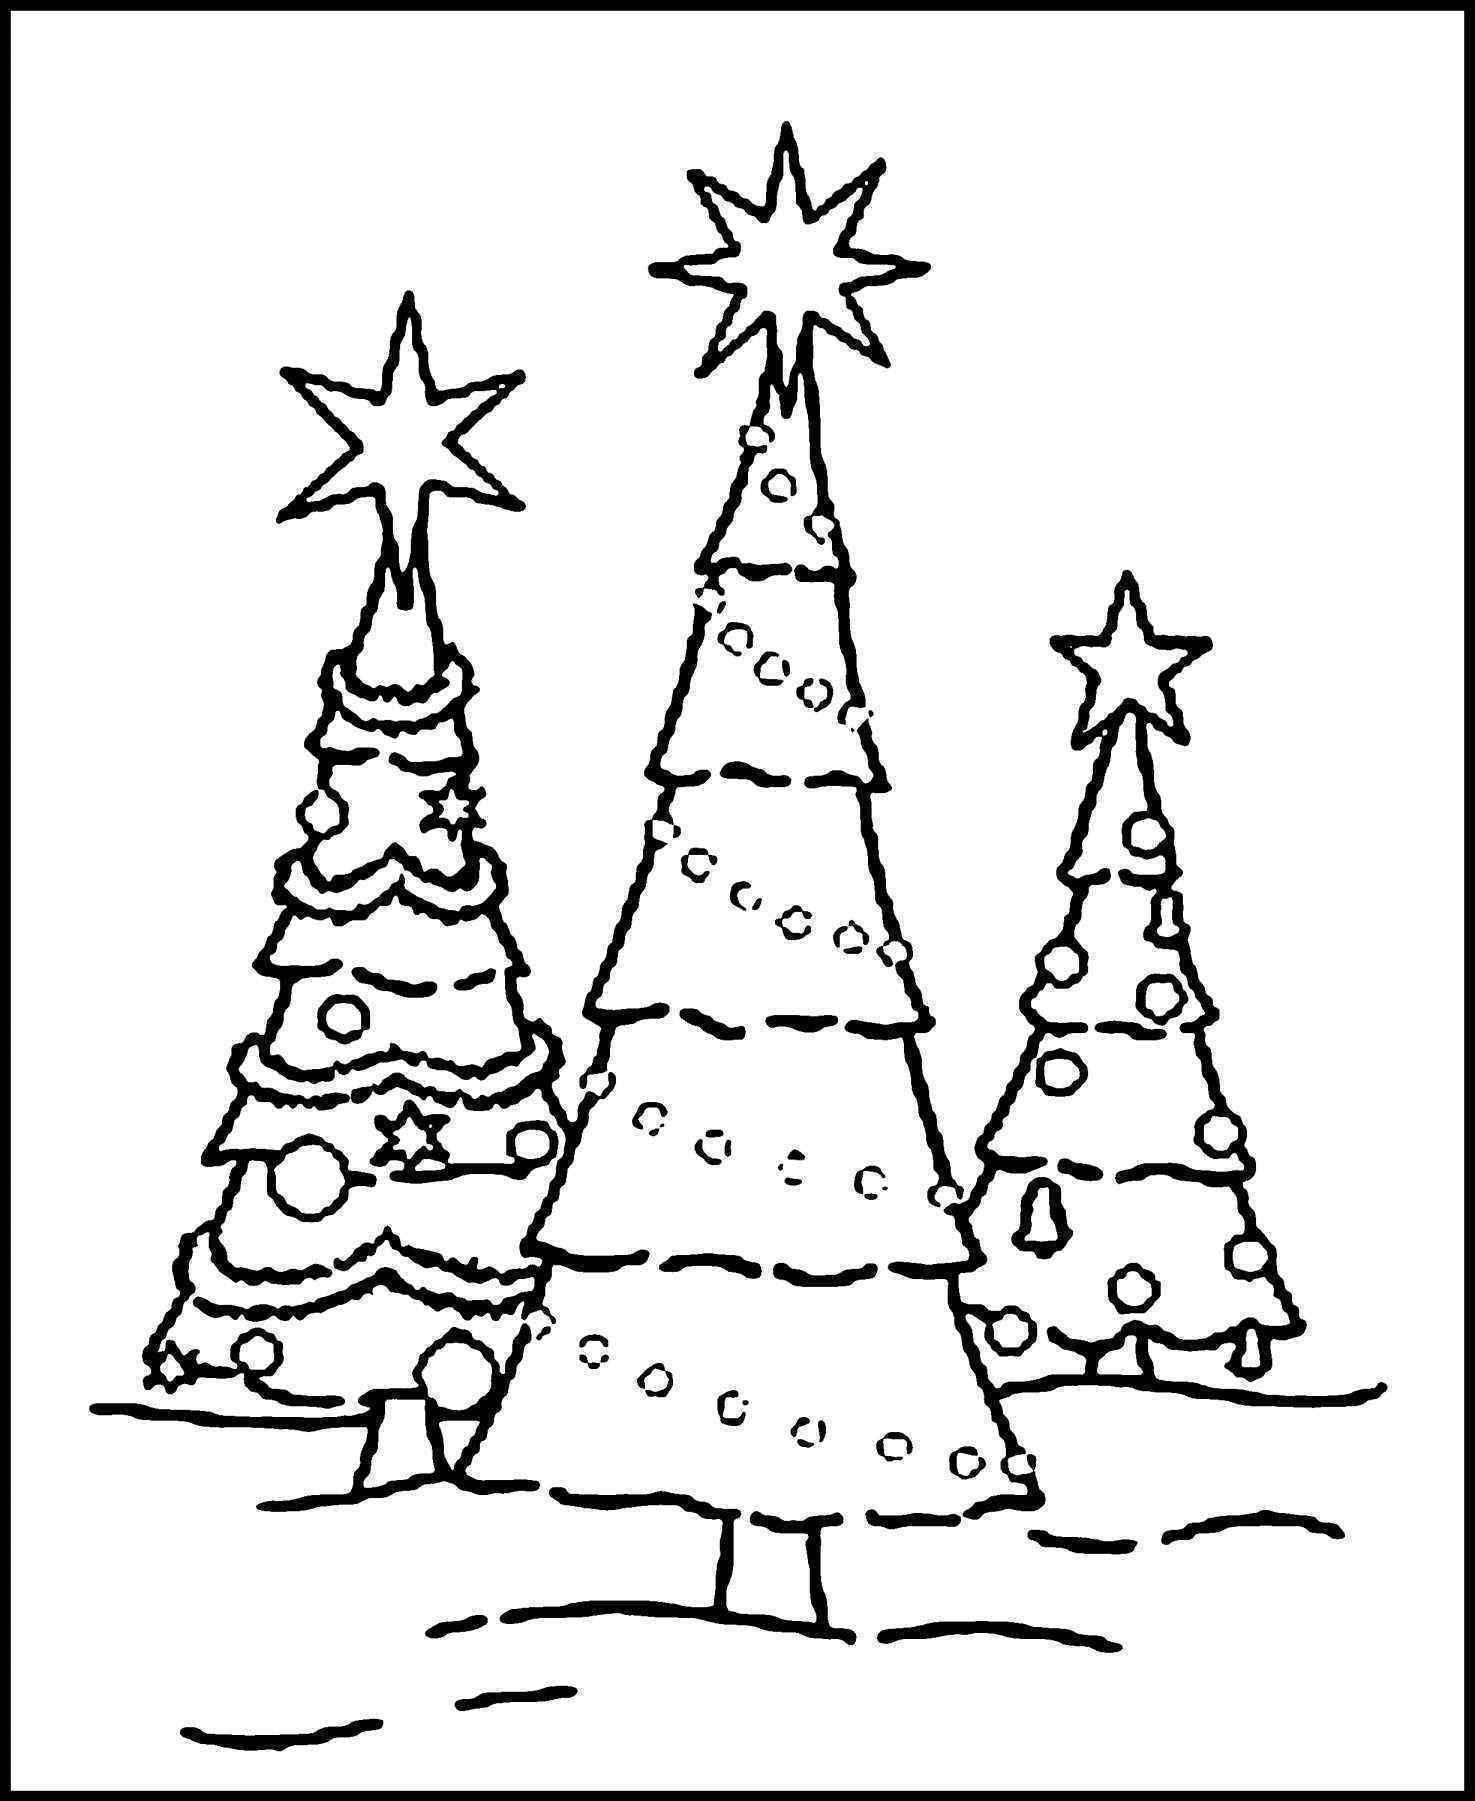 Inspirational christmas clipart svg free library 10+ Inspirational Christmas Decoration Clipart Black and White Ideas ... svg free library